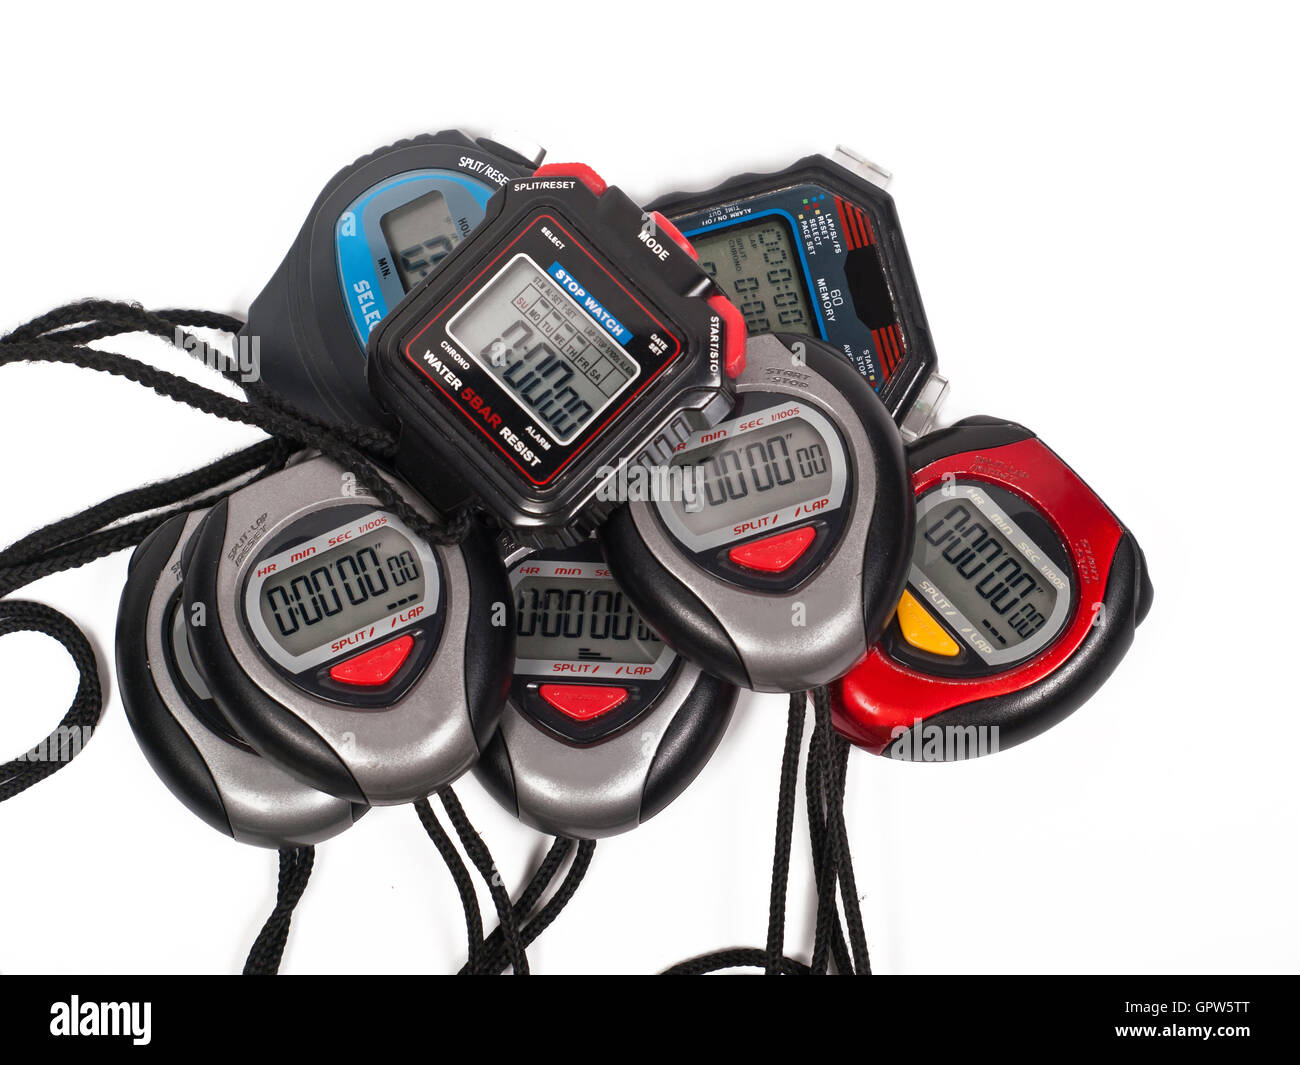 A lot of stop watches - Stock Image